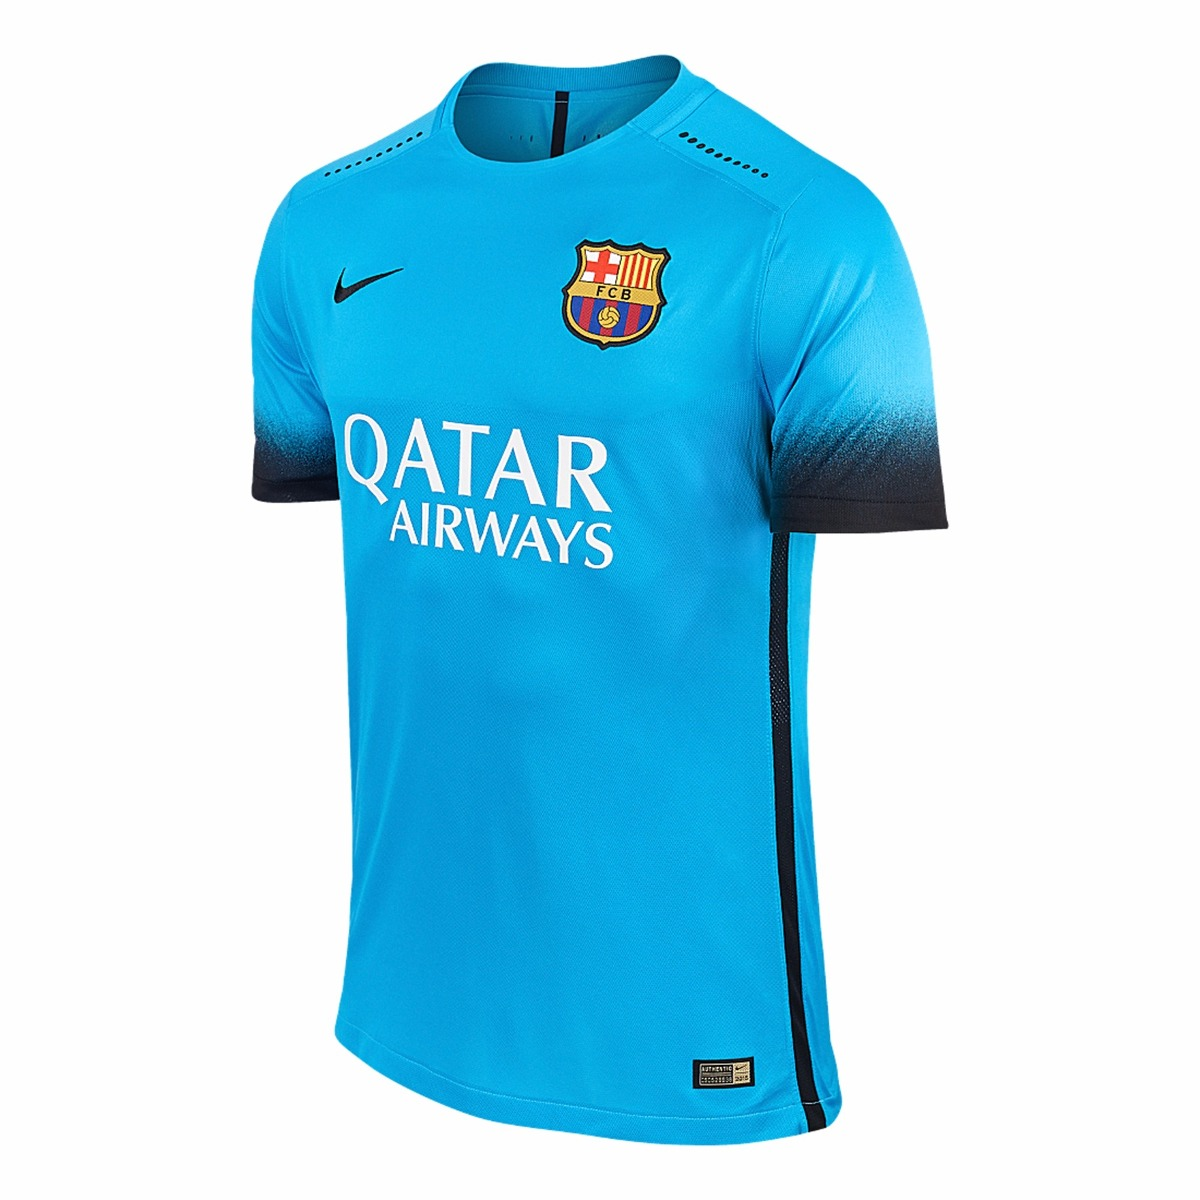 camisa original do barcelona barça neymar messi home e away. Carregando  zoom. 255af0899e5